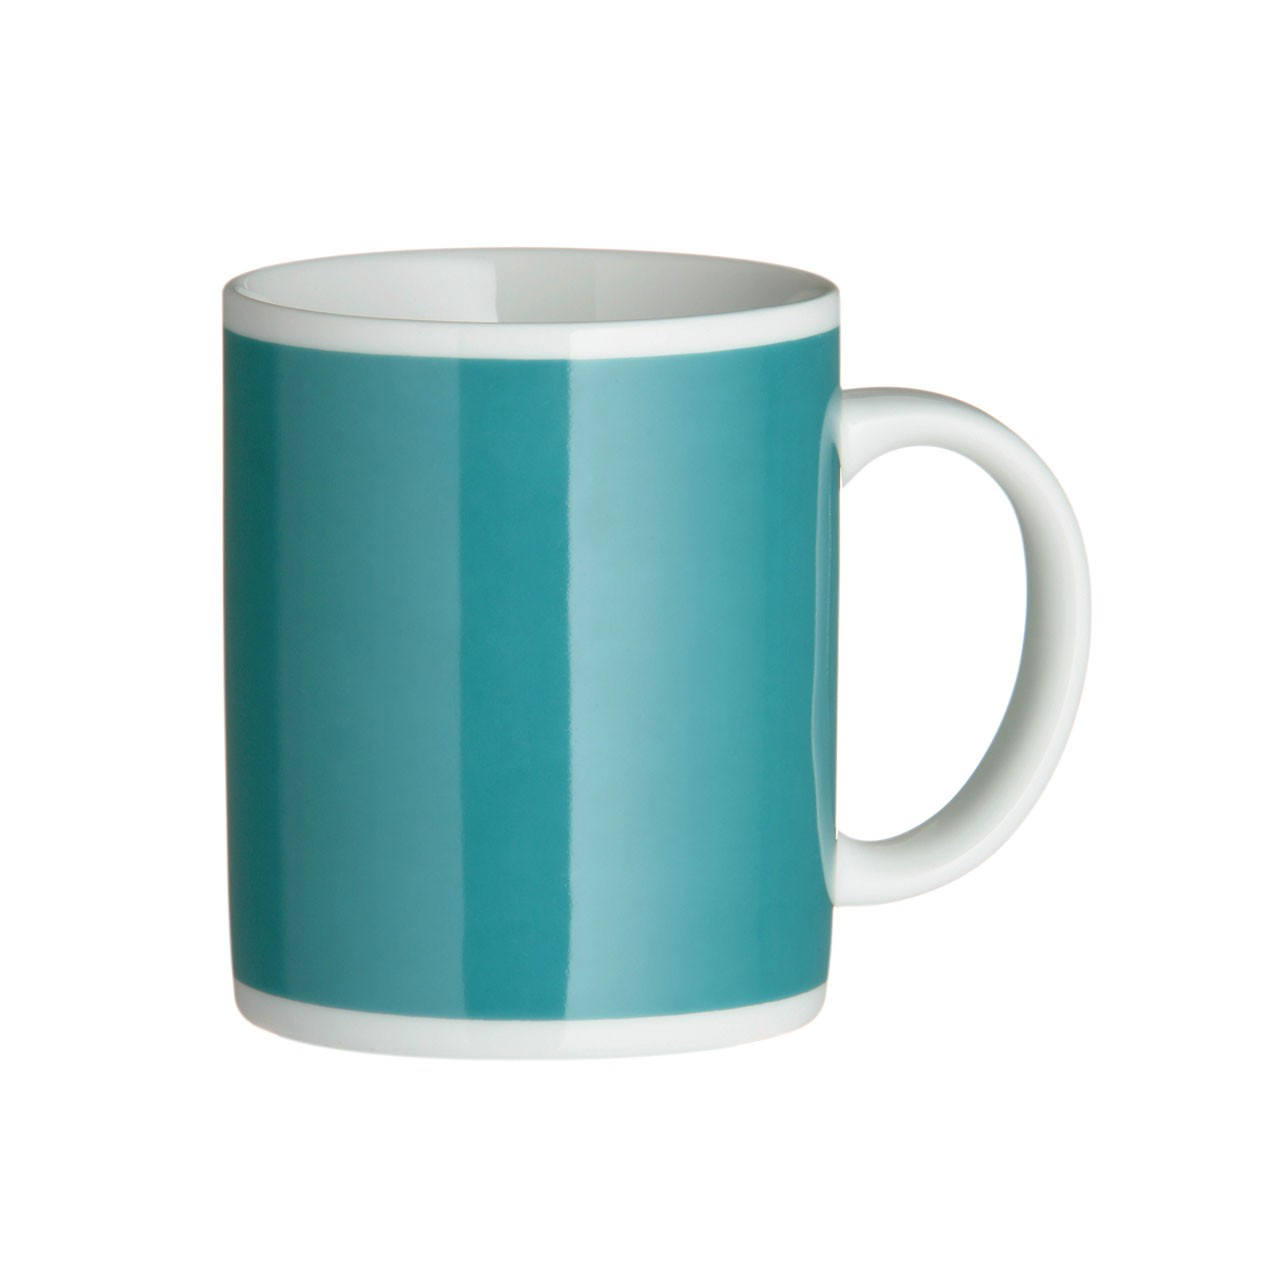 Teal Funky Mugs - Set of 4